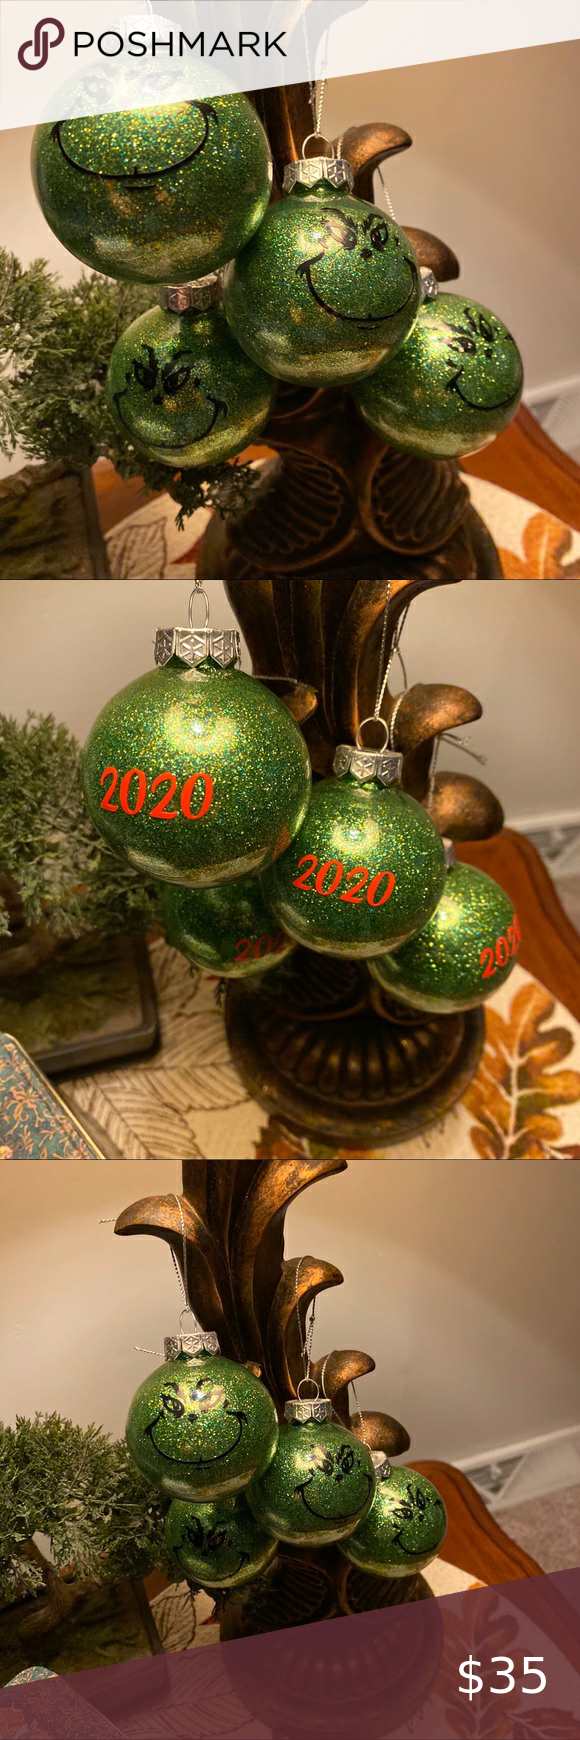 New Handmade Grinch Ornaments in 2020 Grinch ornaments